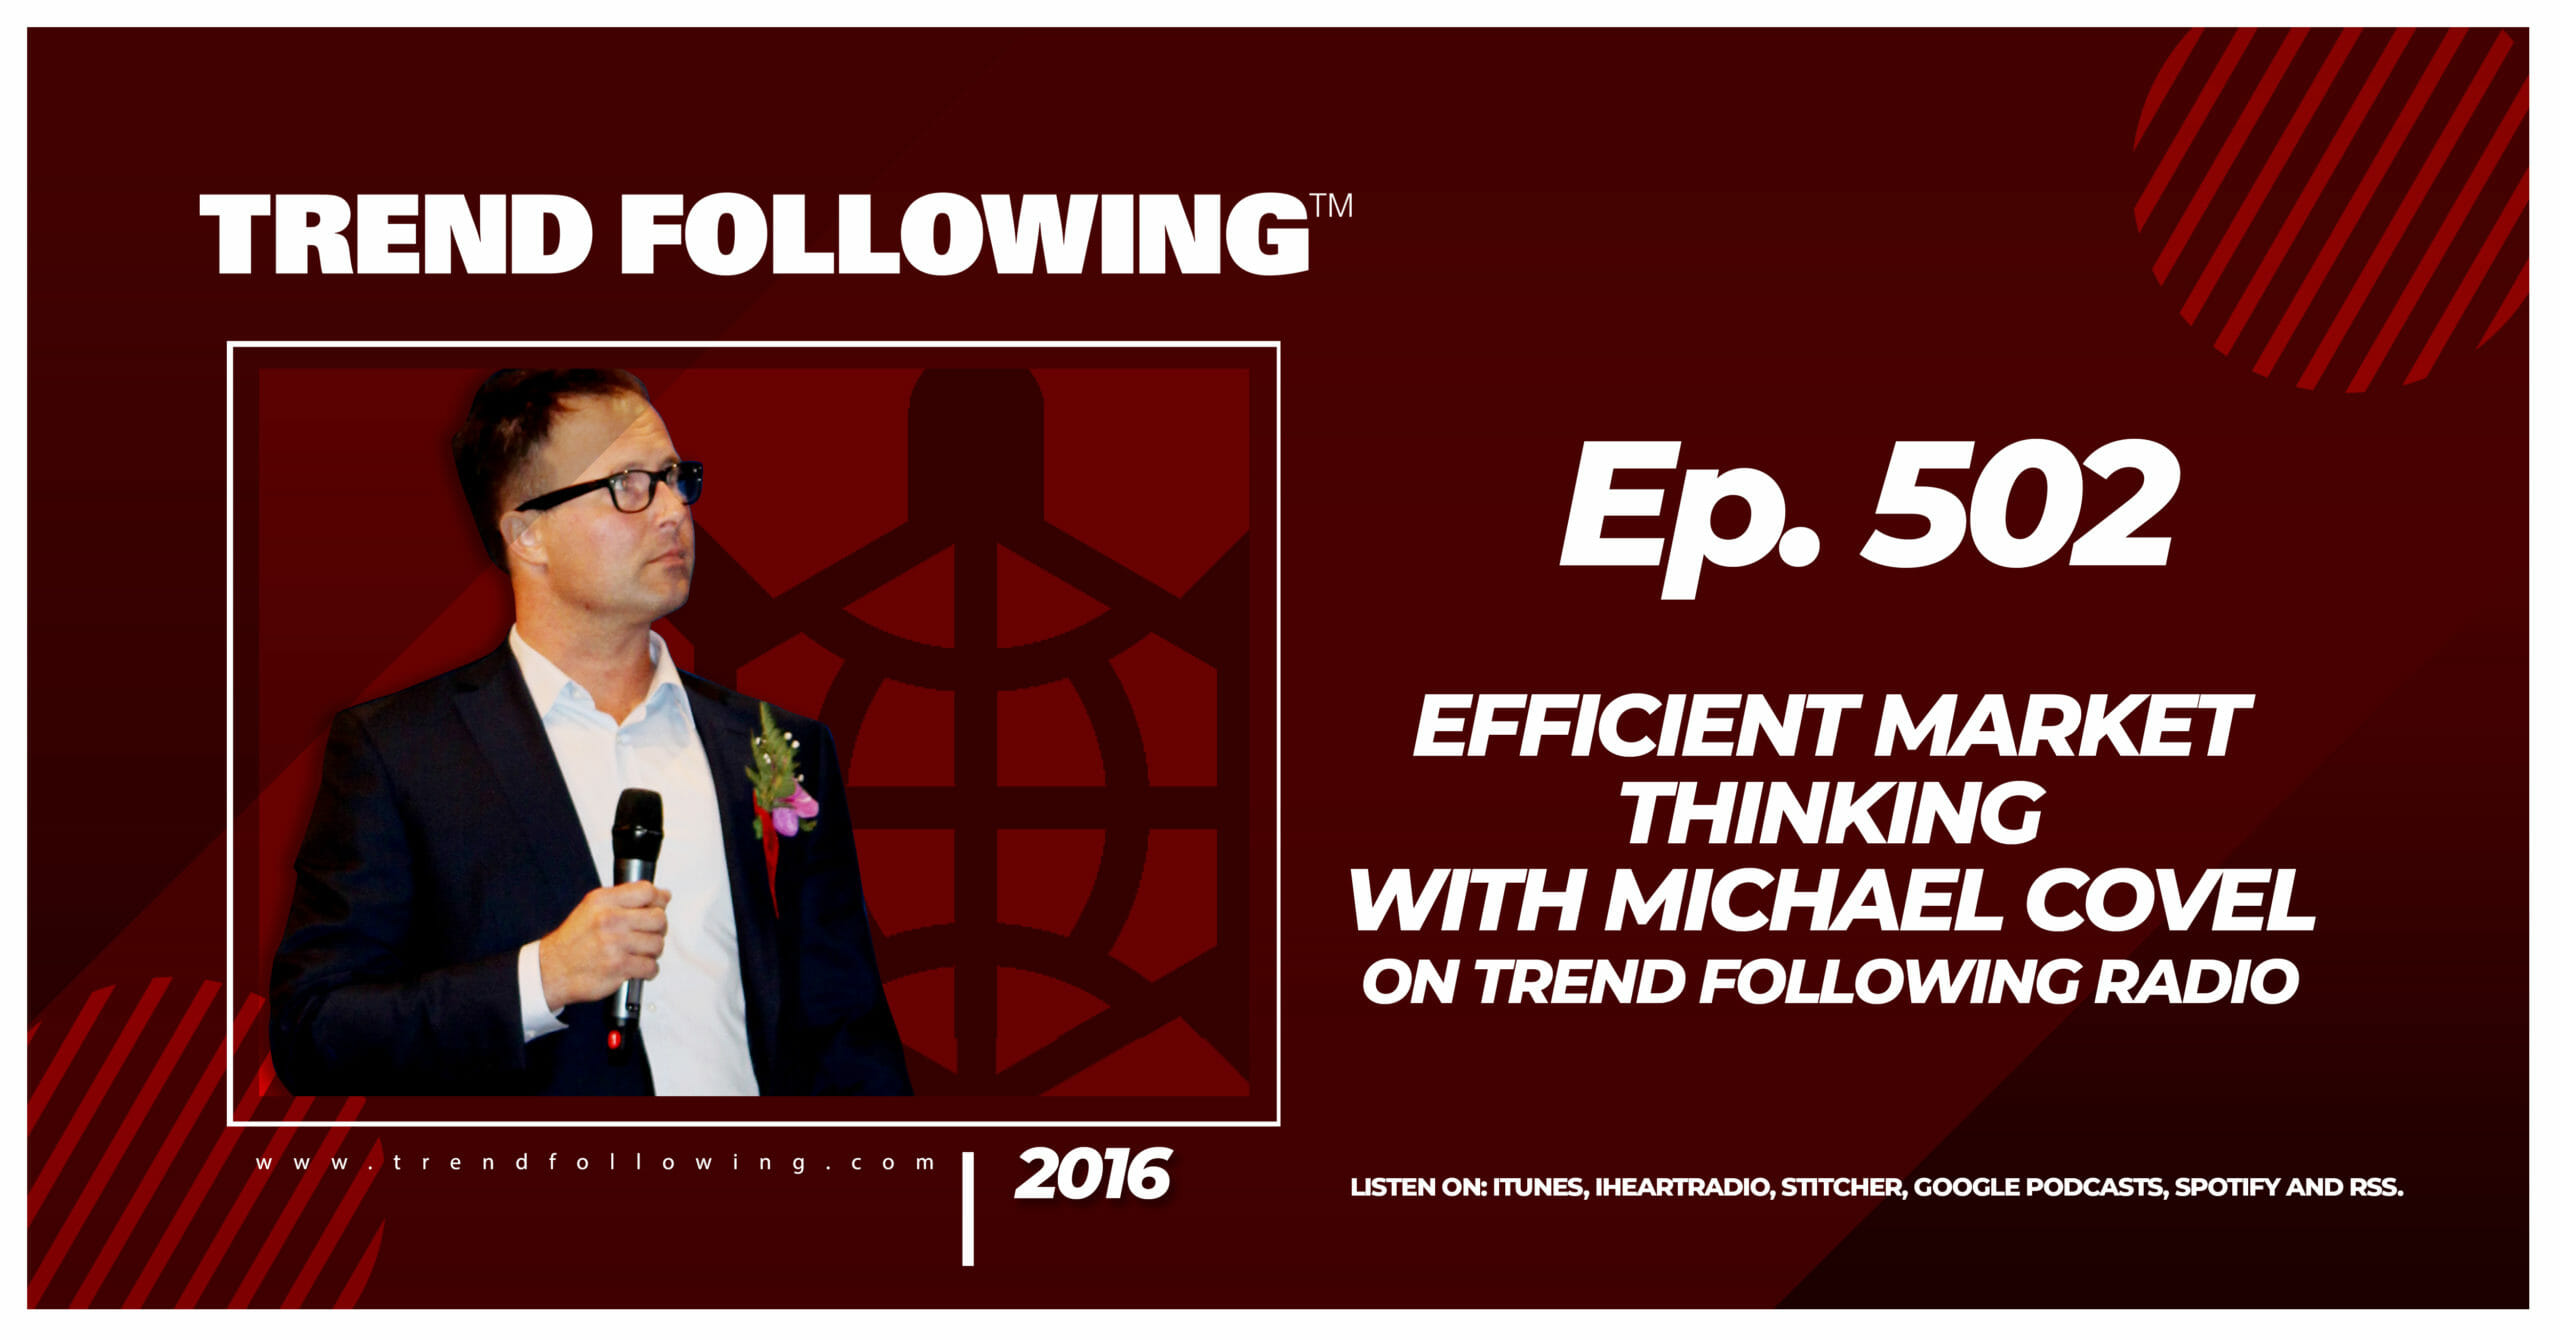 Efficient Market Thinking with Michael Covel on Trend Following Radio